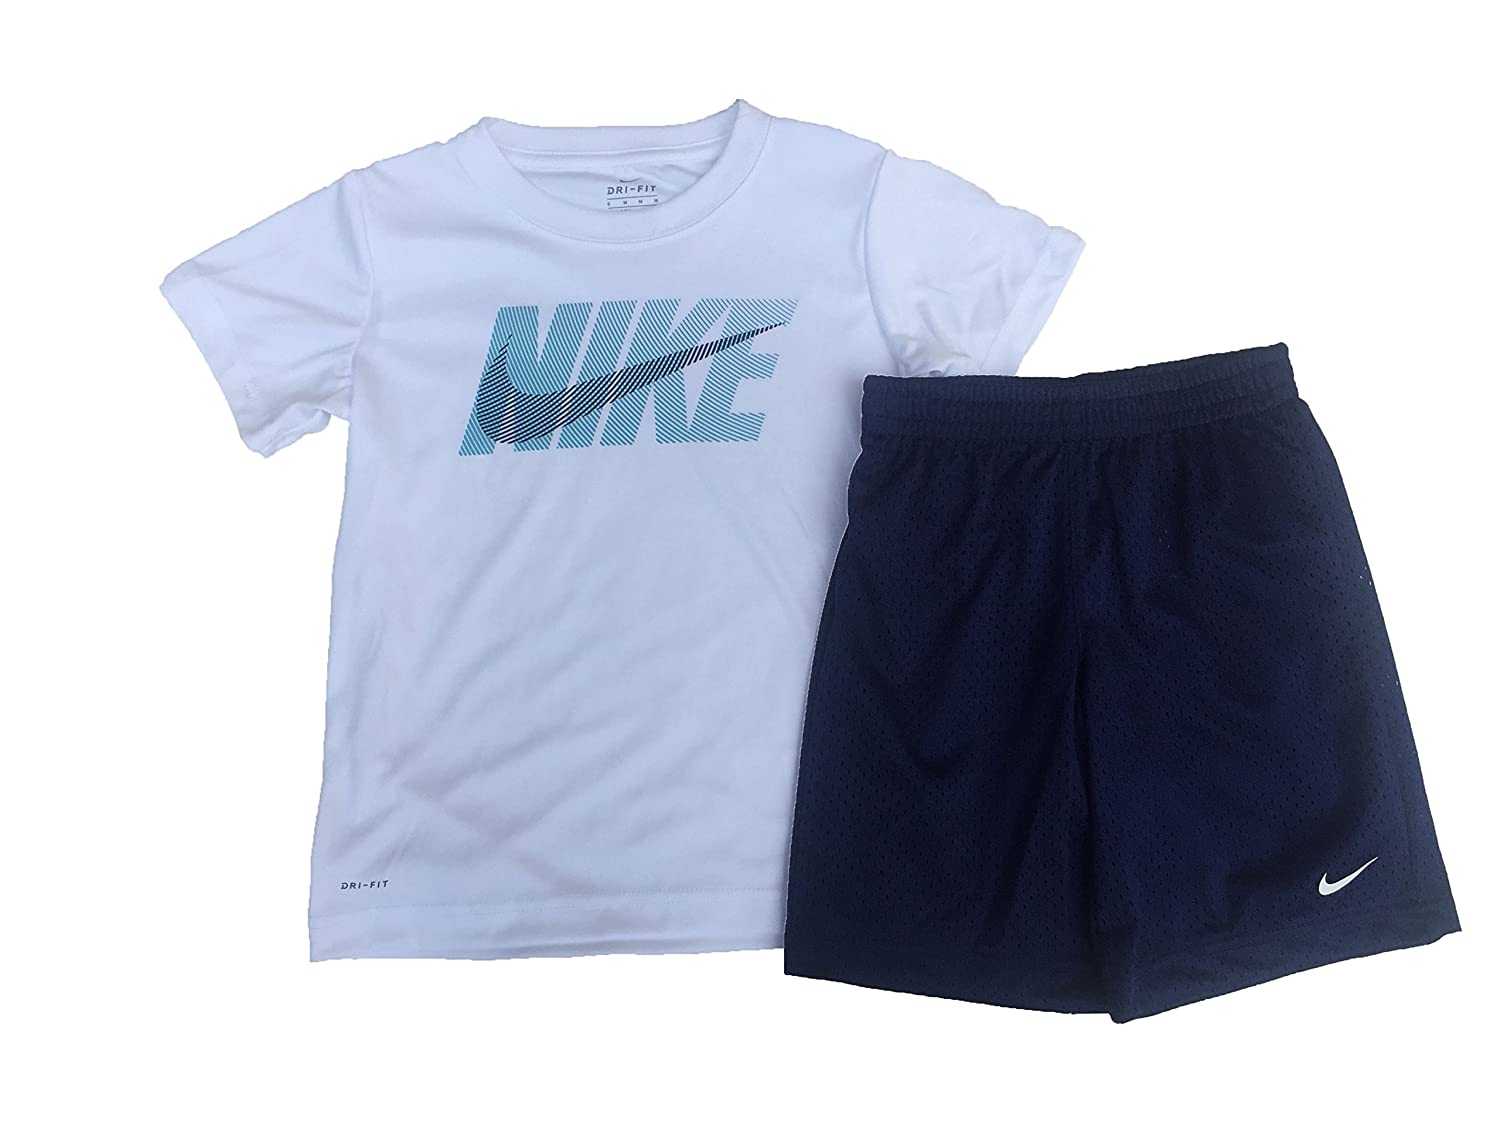 746317faa43e Nike Youth Shirts And Shorts - DREAMWORKS